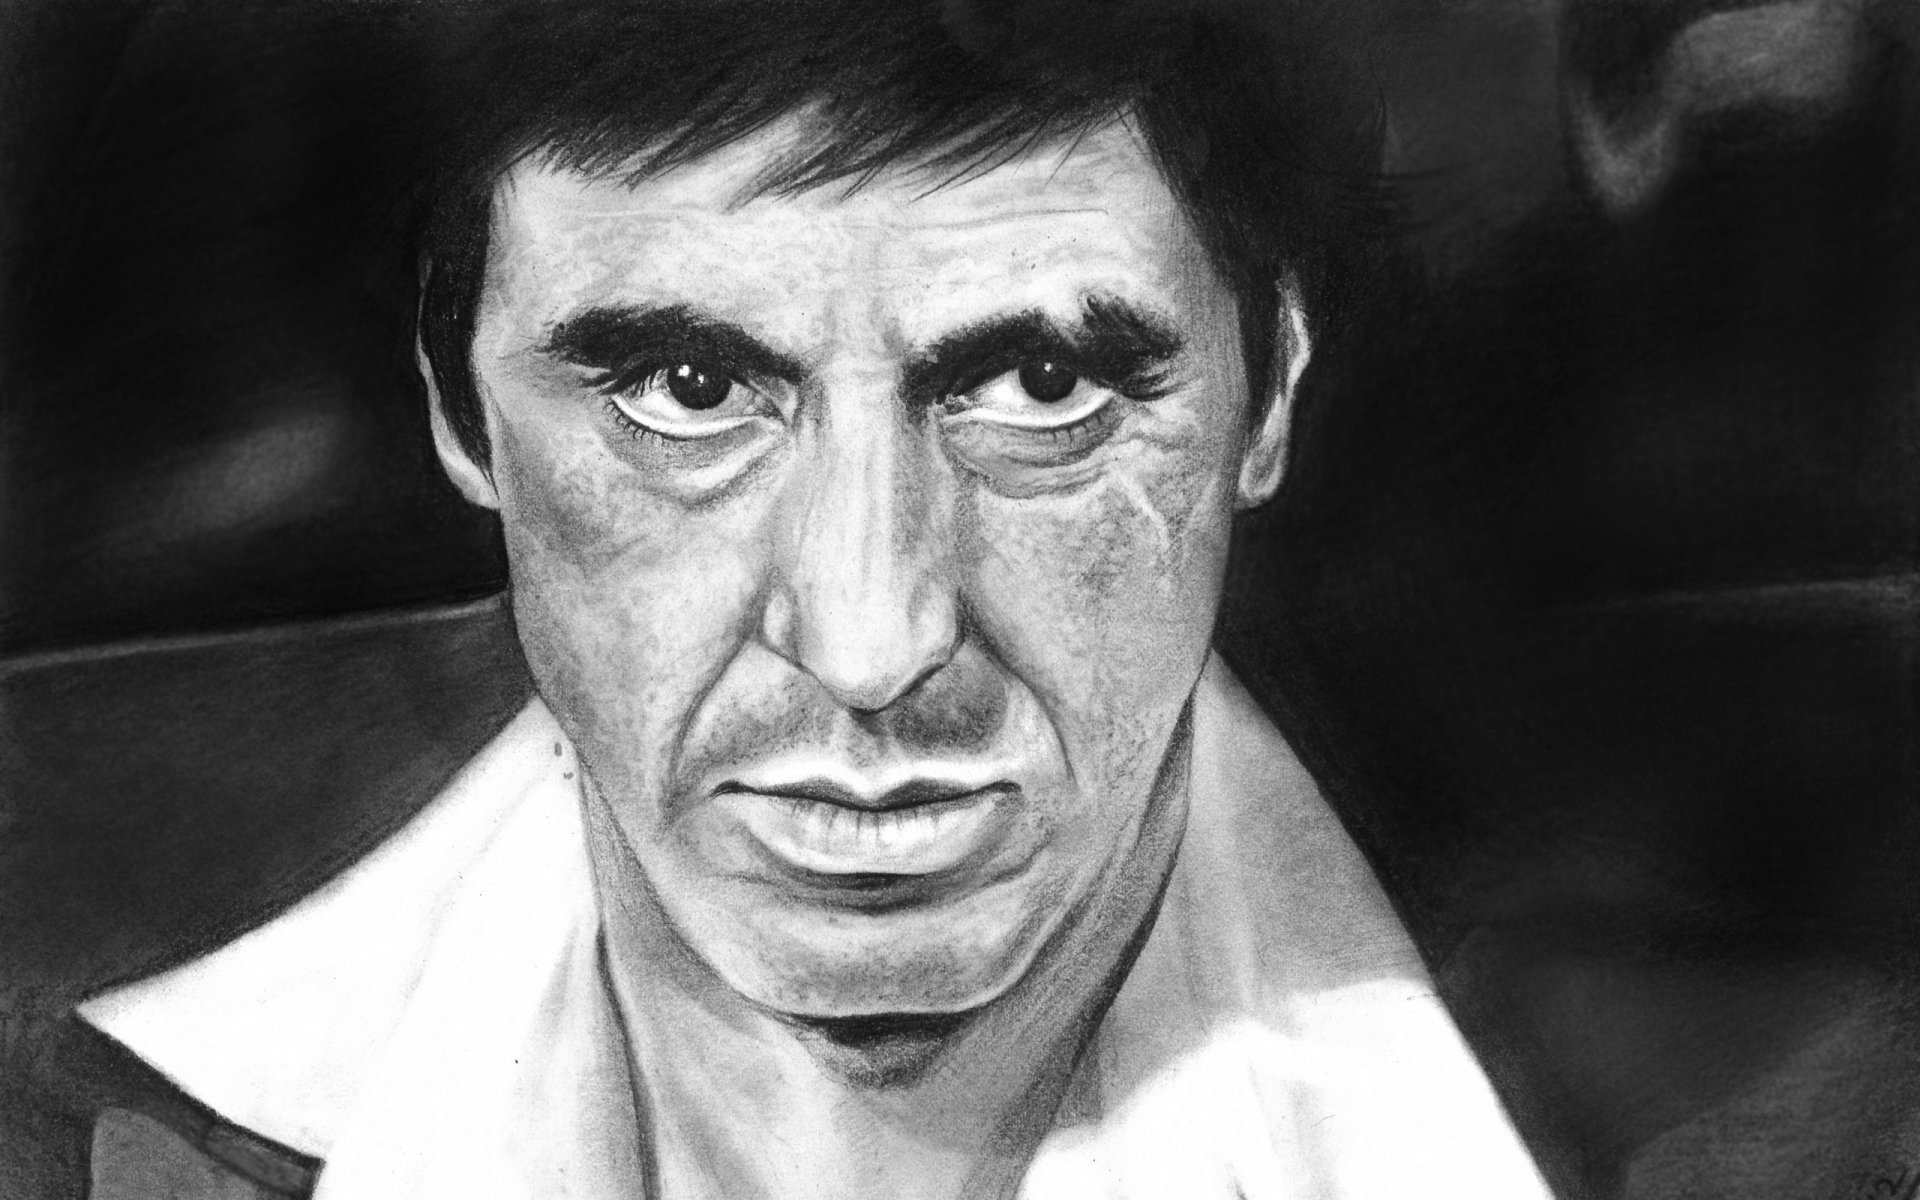 Scarface Full Hd Wallpaper Scarface Hd Wallpaper Background Image 2560x1600 Id